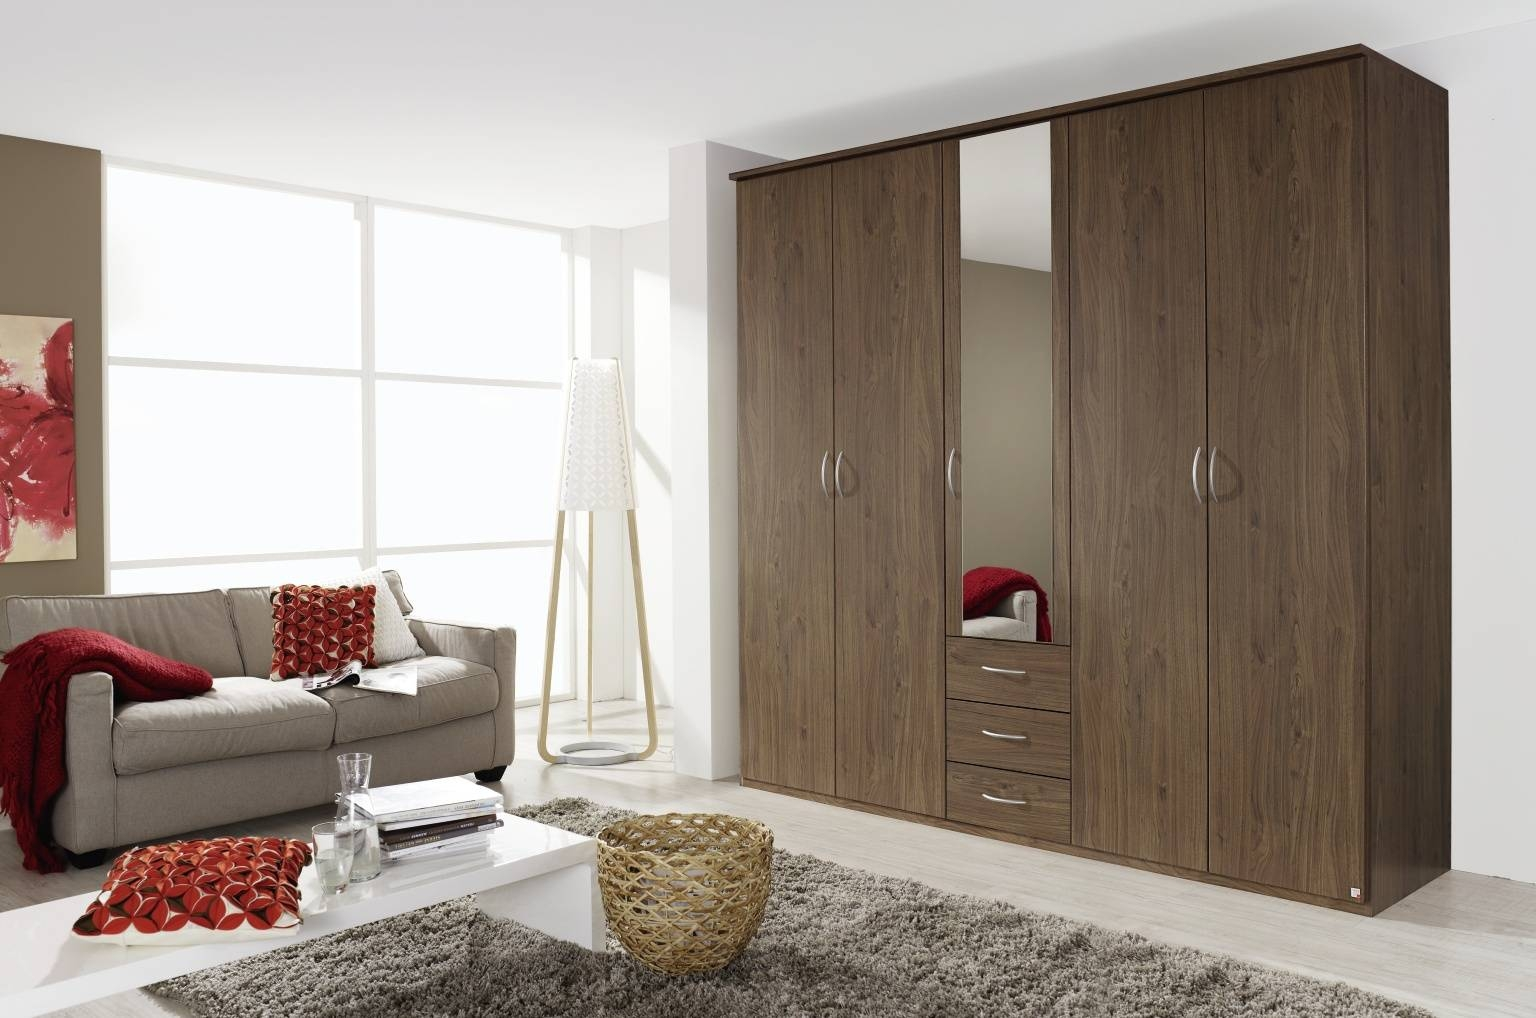 Rauch Kent Wardrobes – Furniture Brothers In Kent Wardrobes (View 5 of 15)